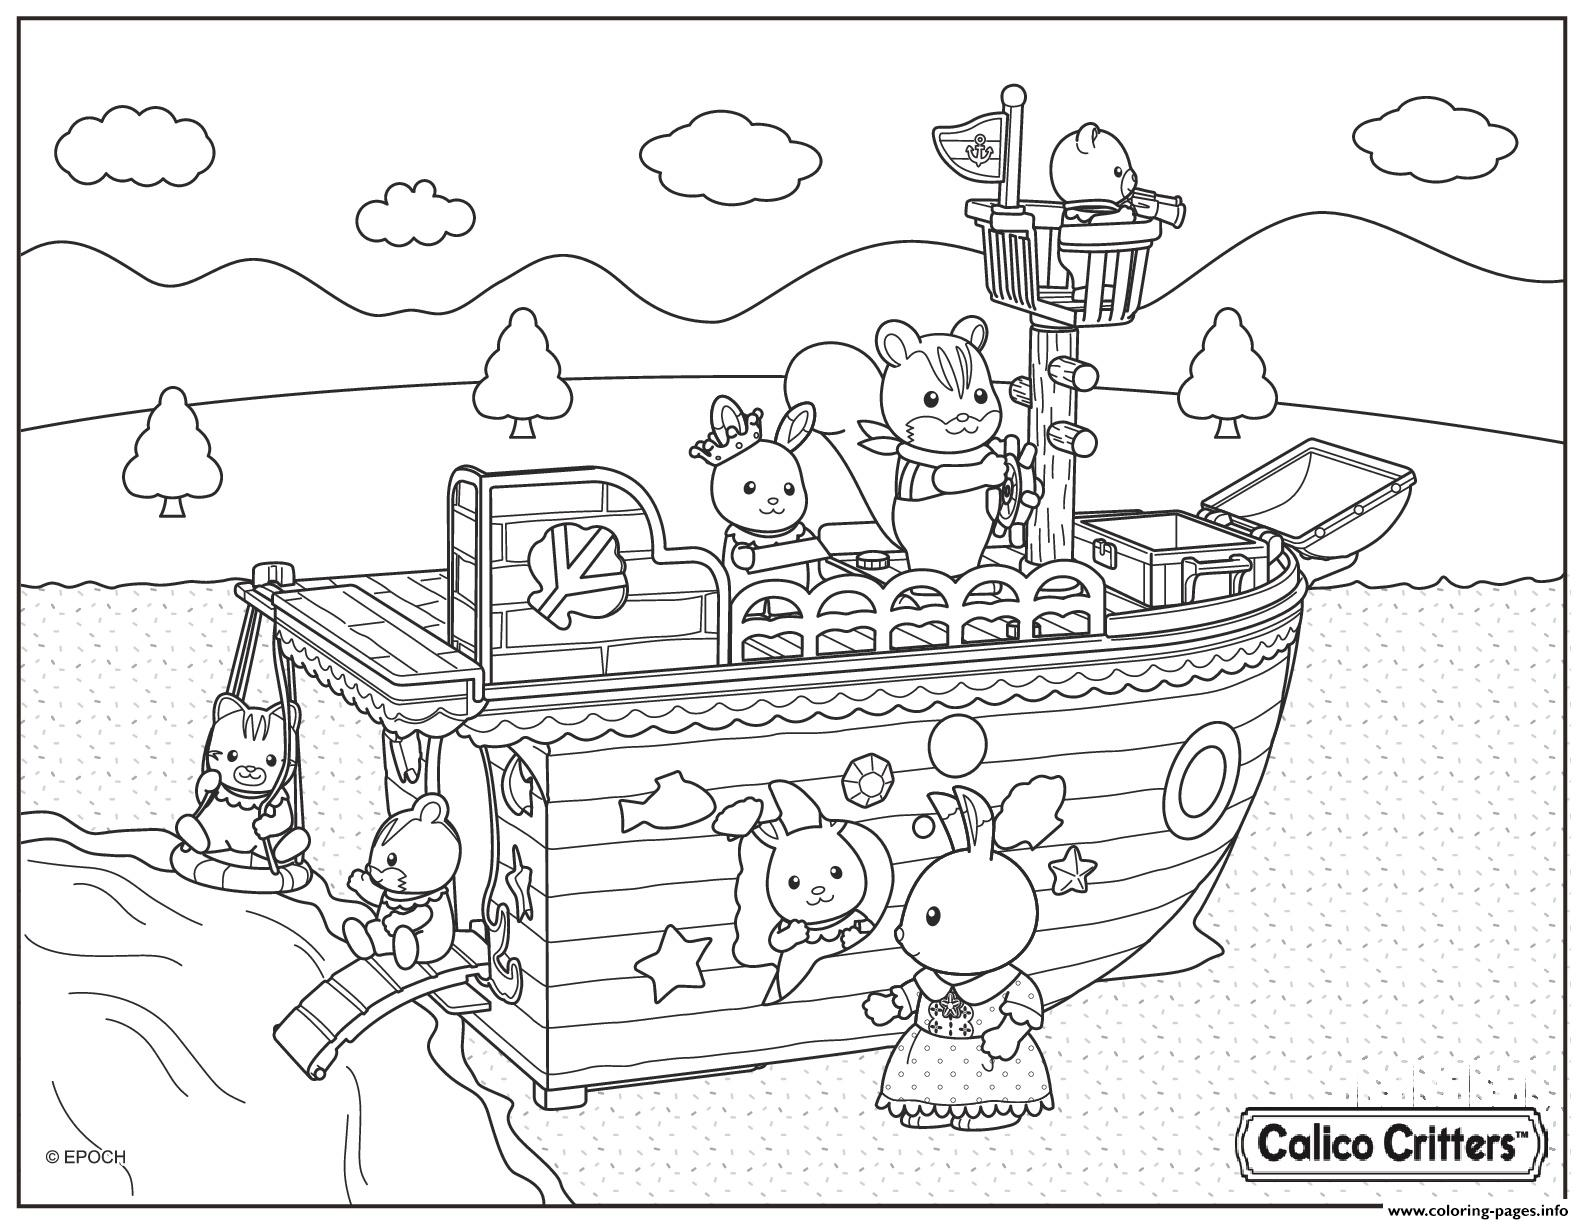 Calico Critters Boat Trip Captain Coloring Pages Printable